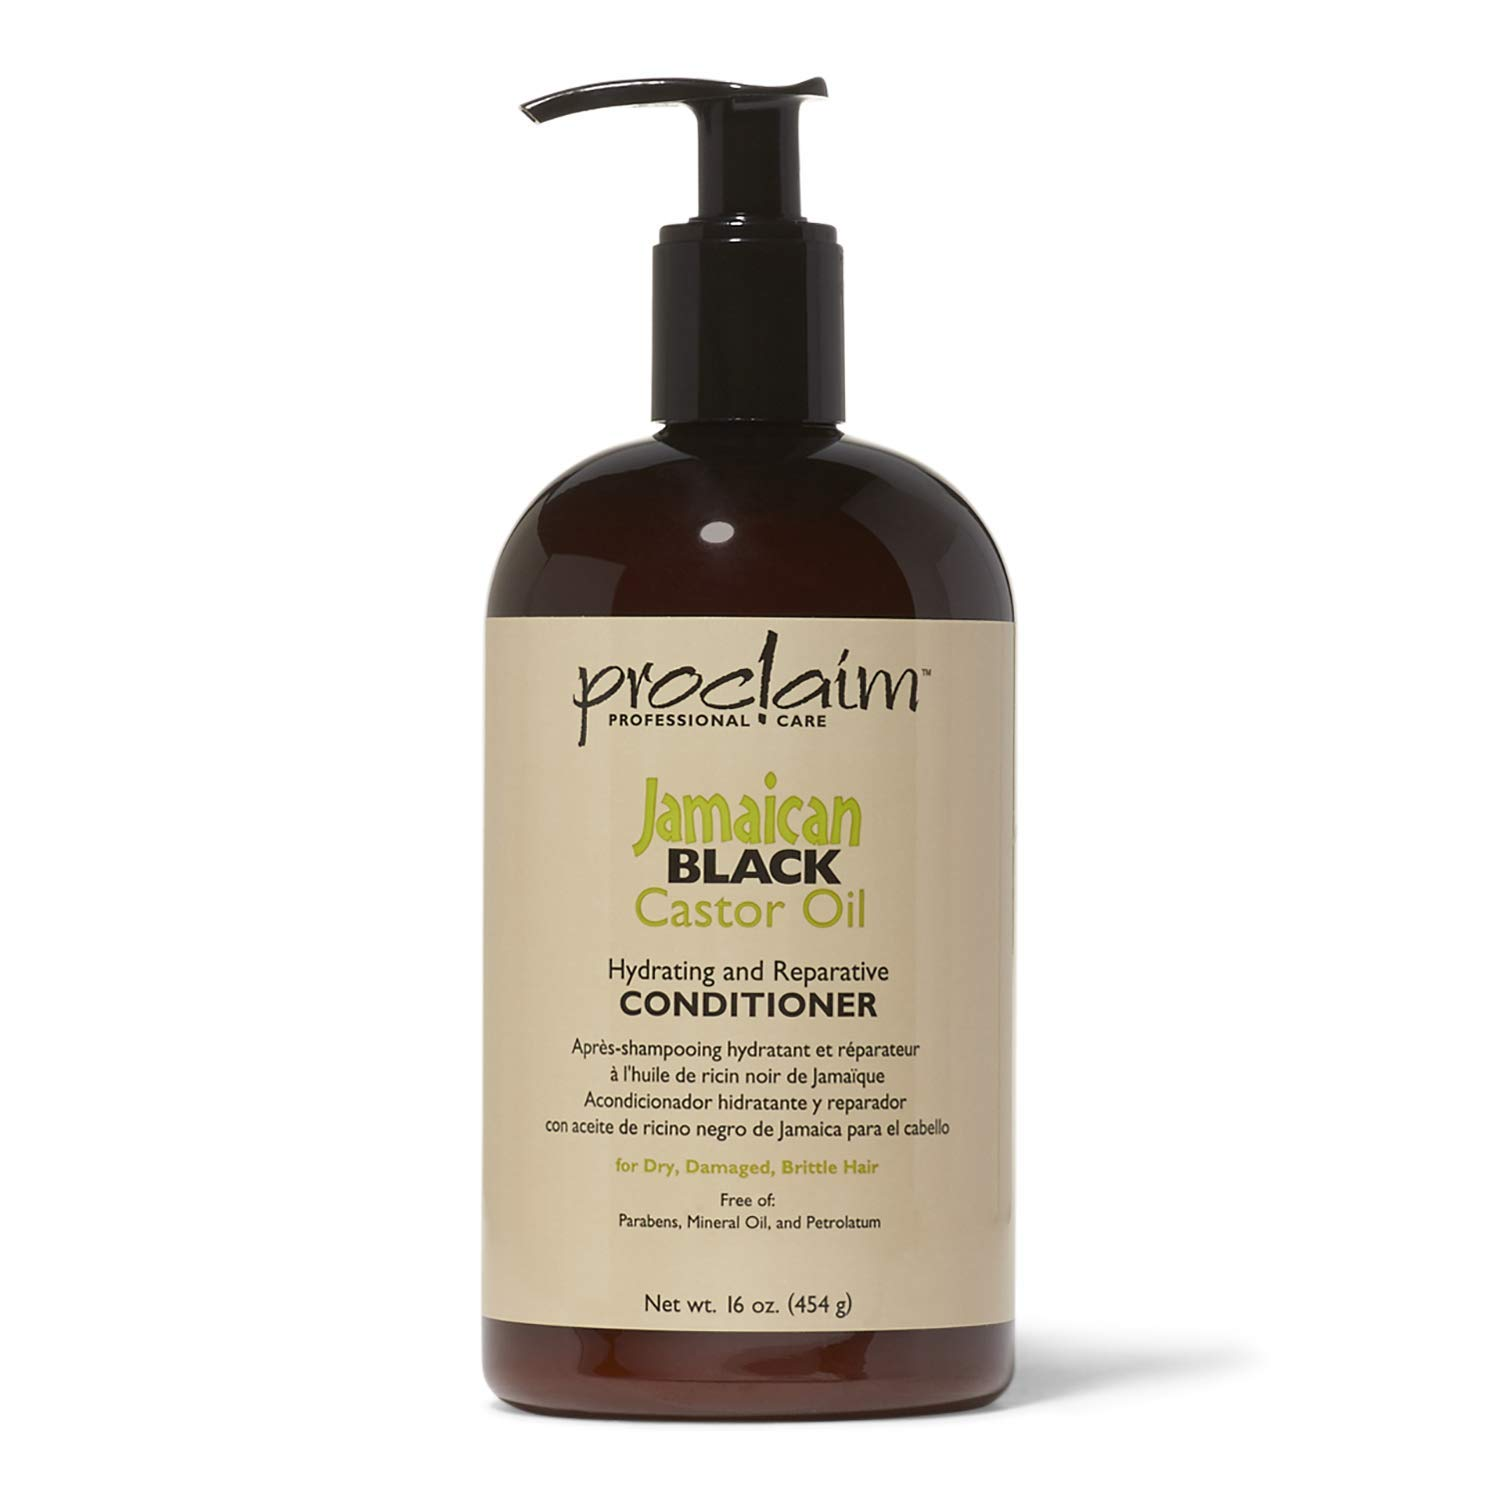 Proclaim Jamaican Black Castor Oil Conditioner